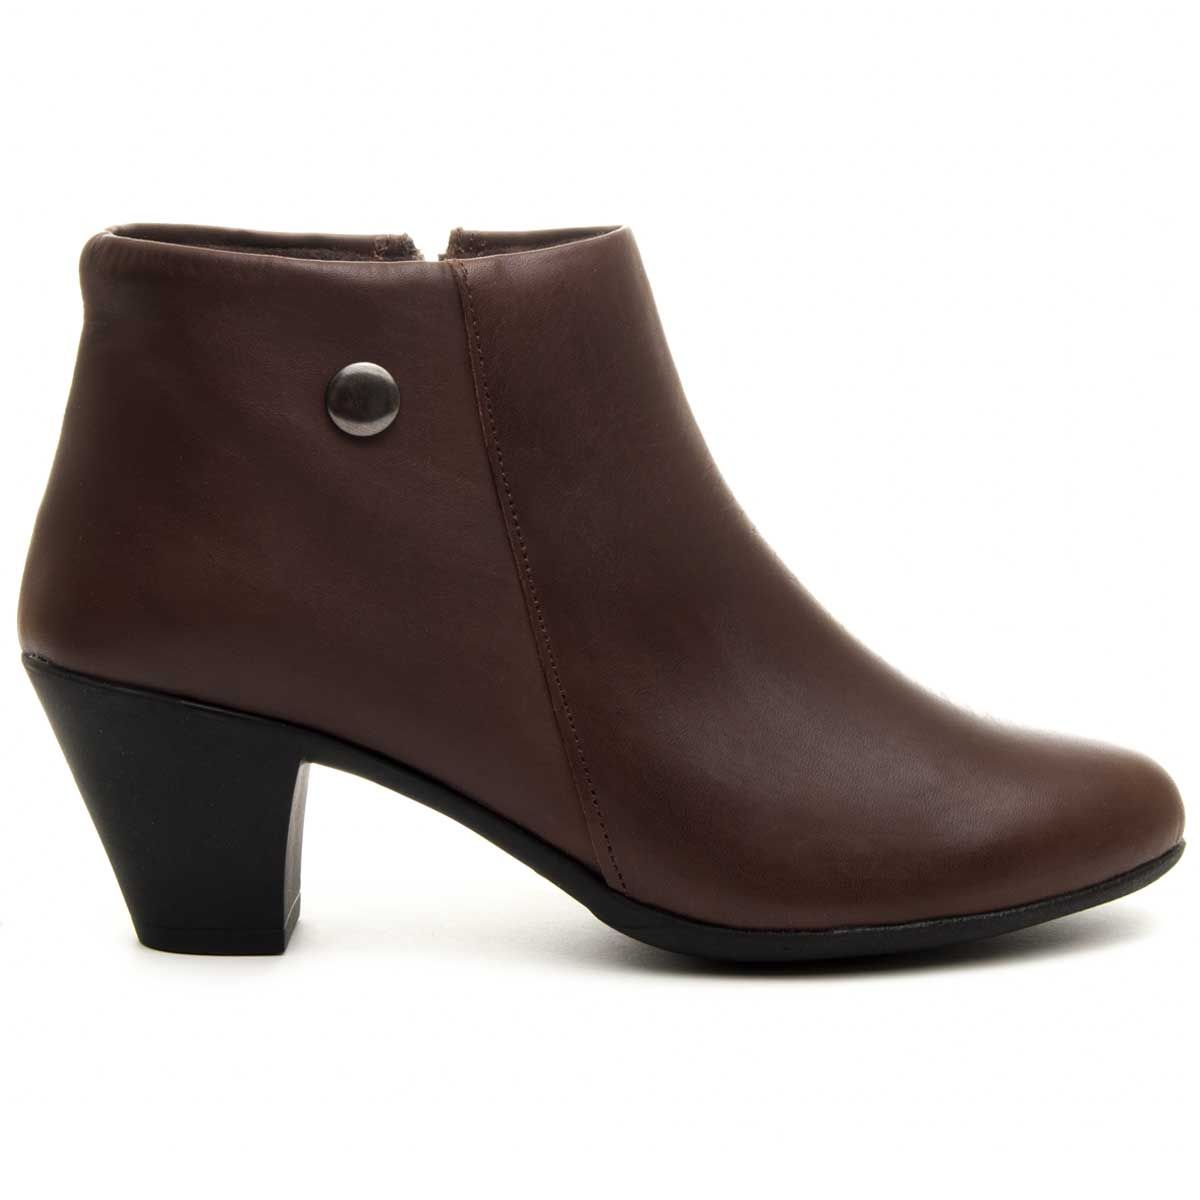 Purapiel Heeled Ankle Boot in Brown